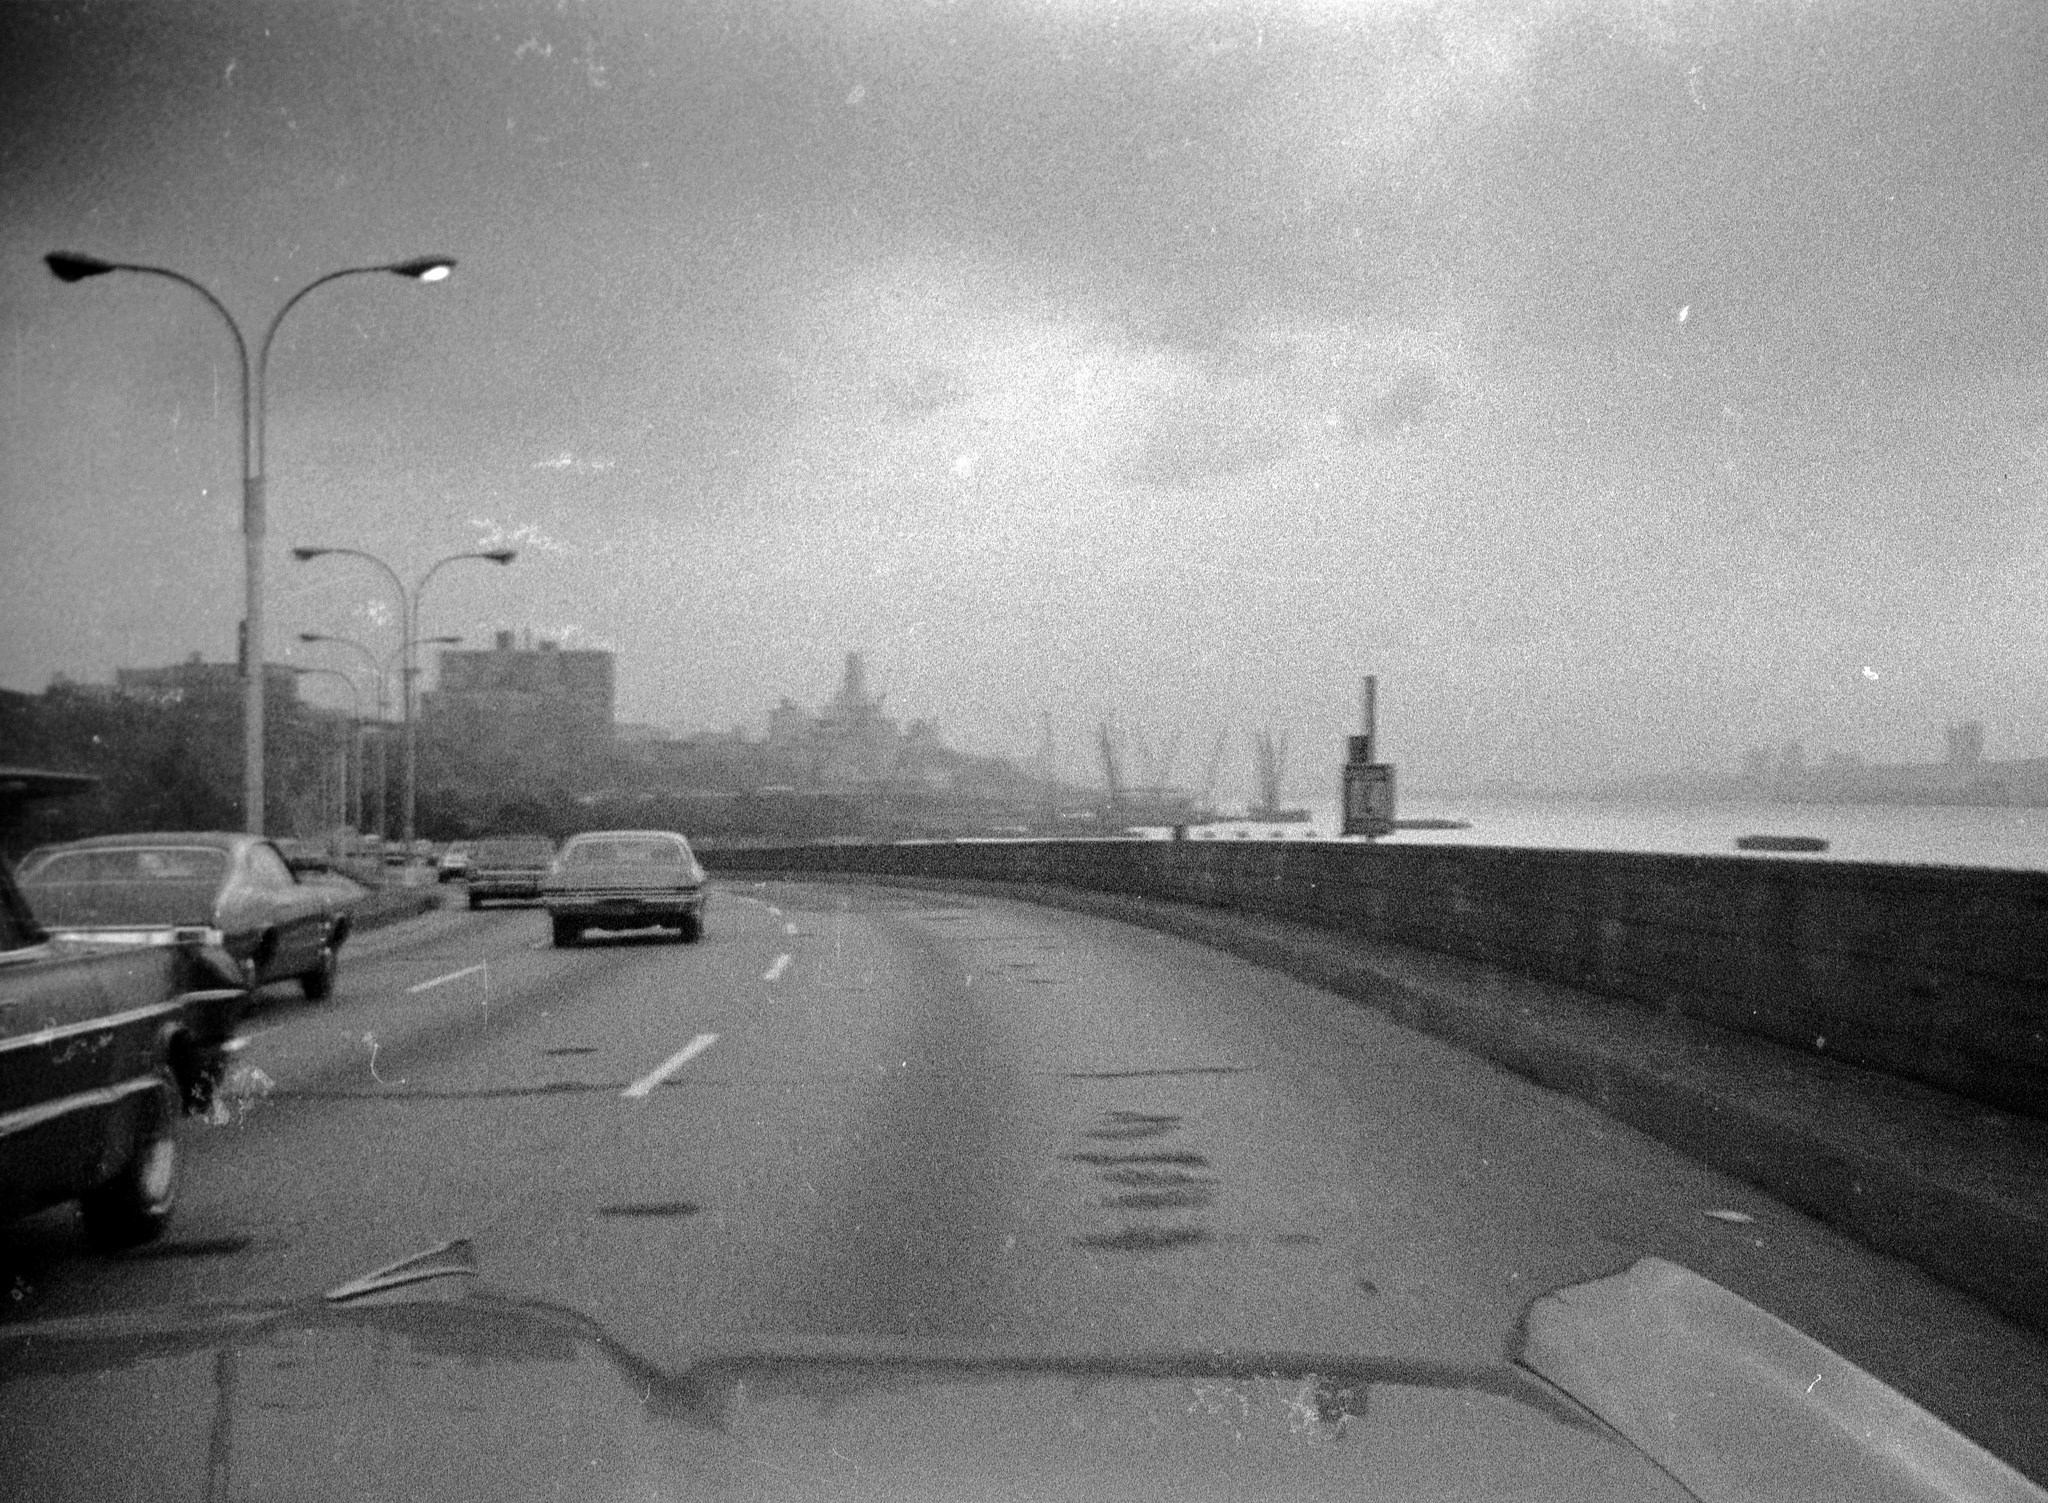 Cruising down the dilapidated 1970s Henry Hudson Parkway on the west side toward midtown Manhattan in my dad's 1965 Pontiac Bonneville Aug. 1975